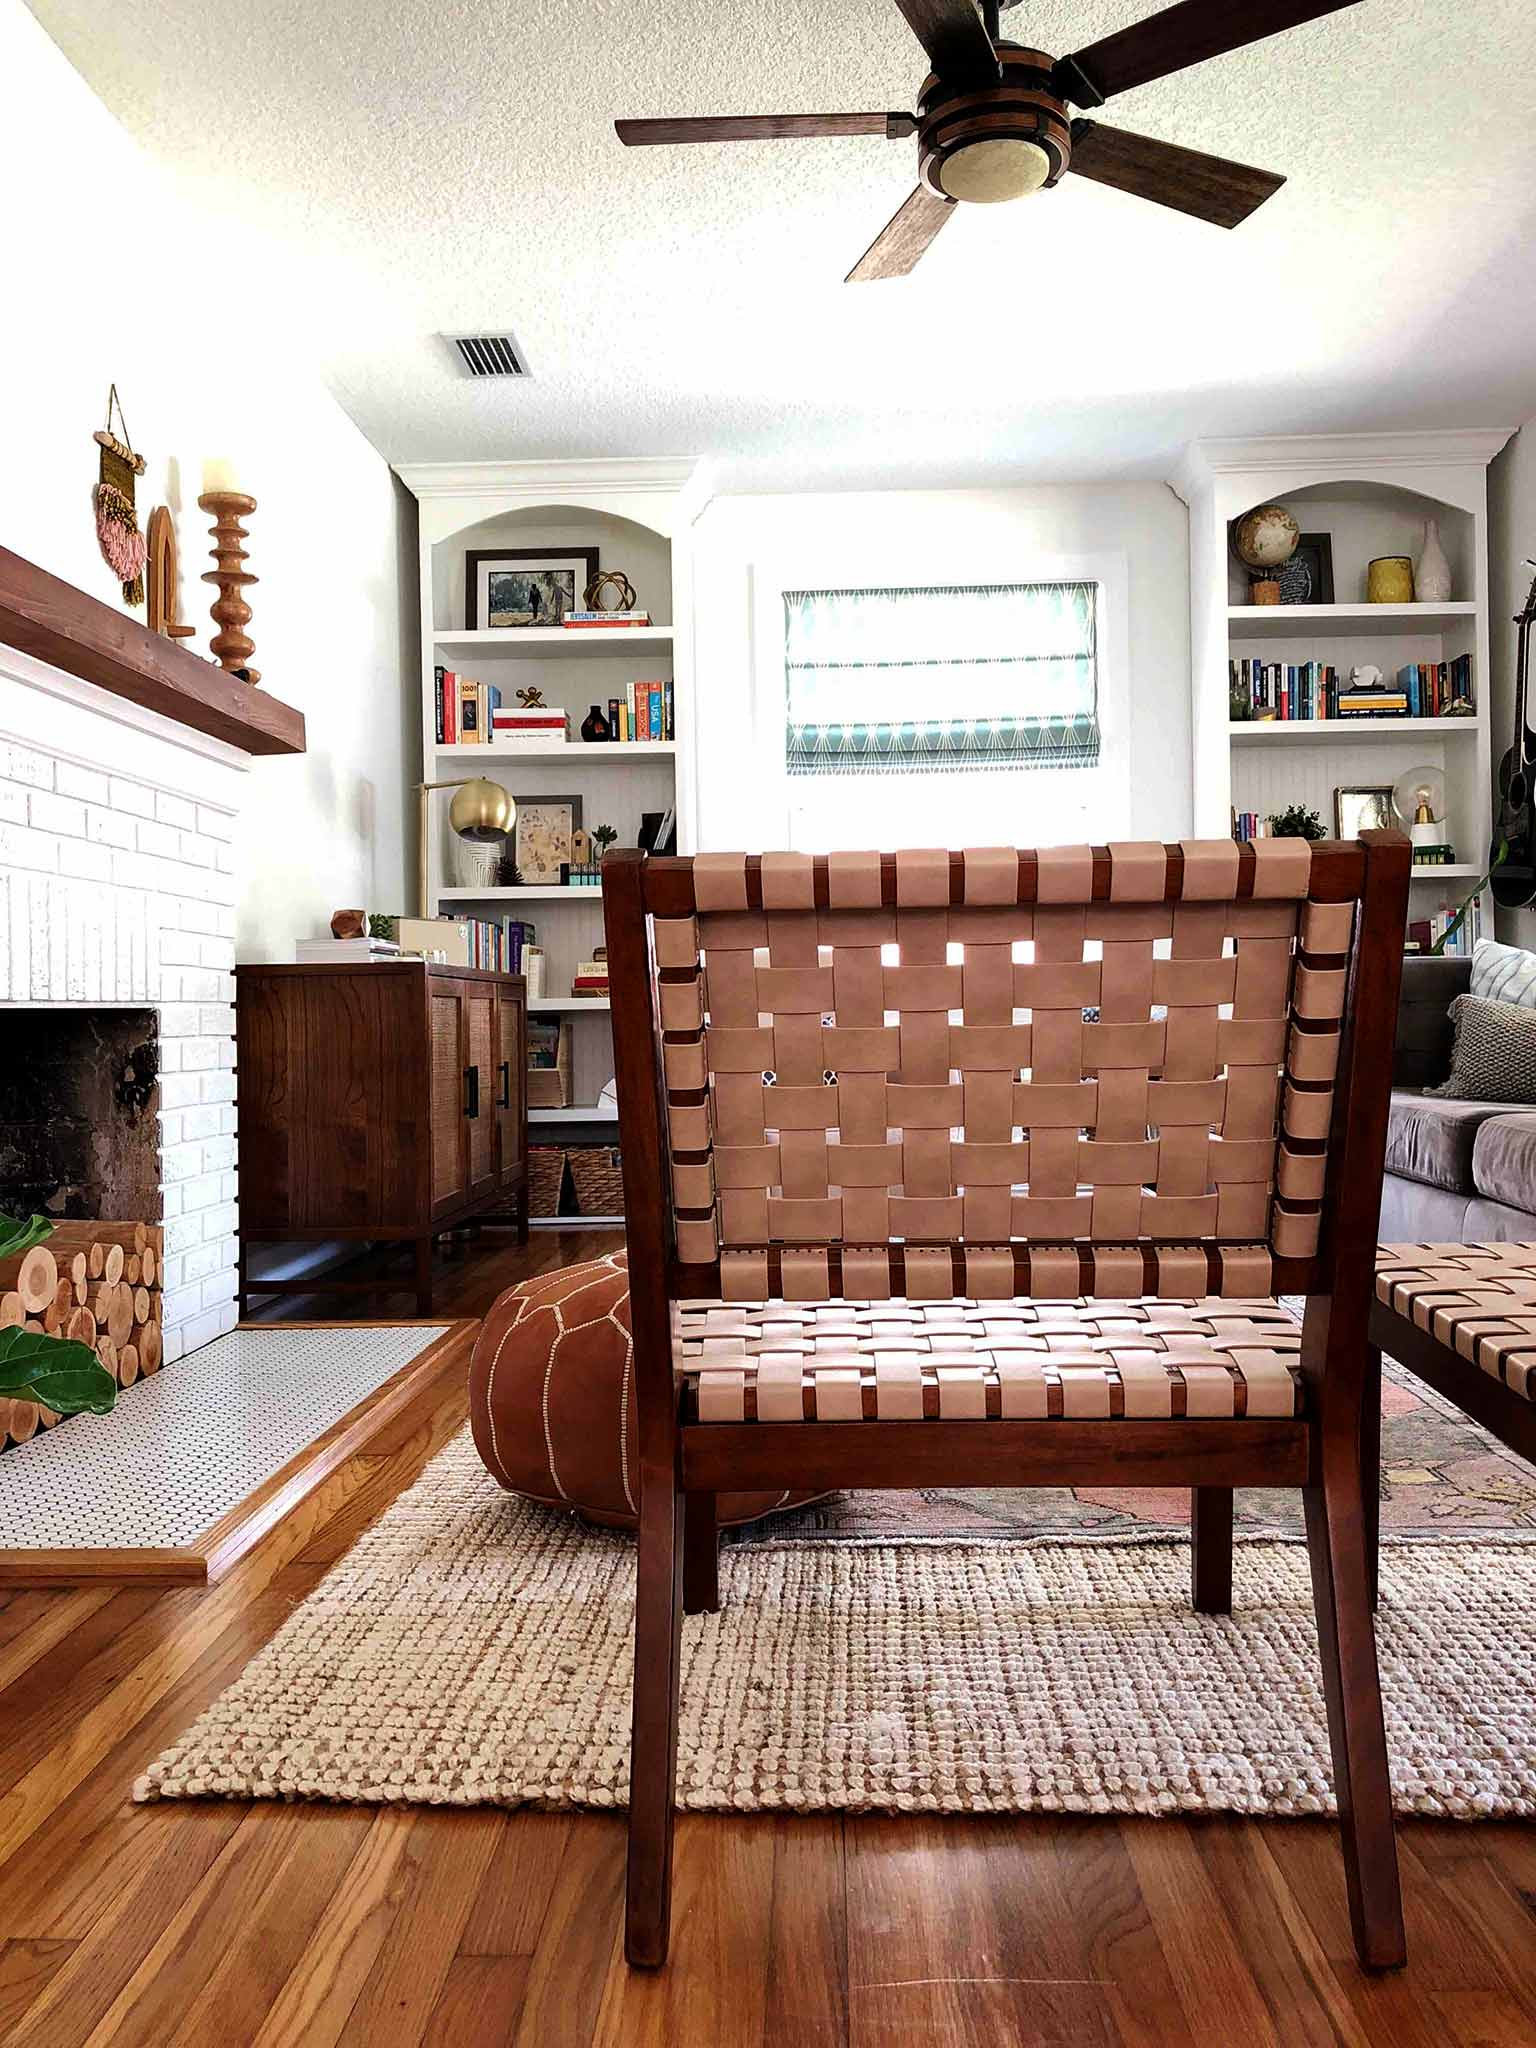 Layered and cozy living room - accent woven chairs Project 62 - That Homebird Life Blog